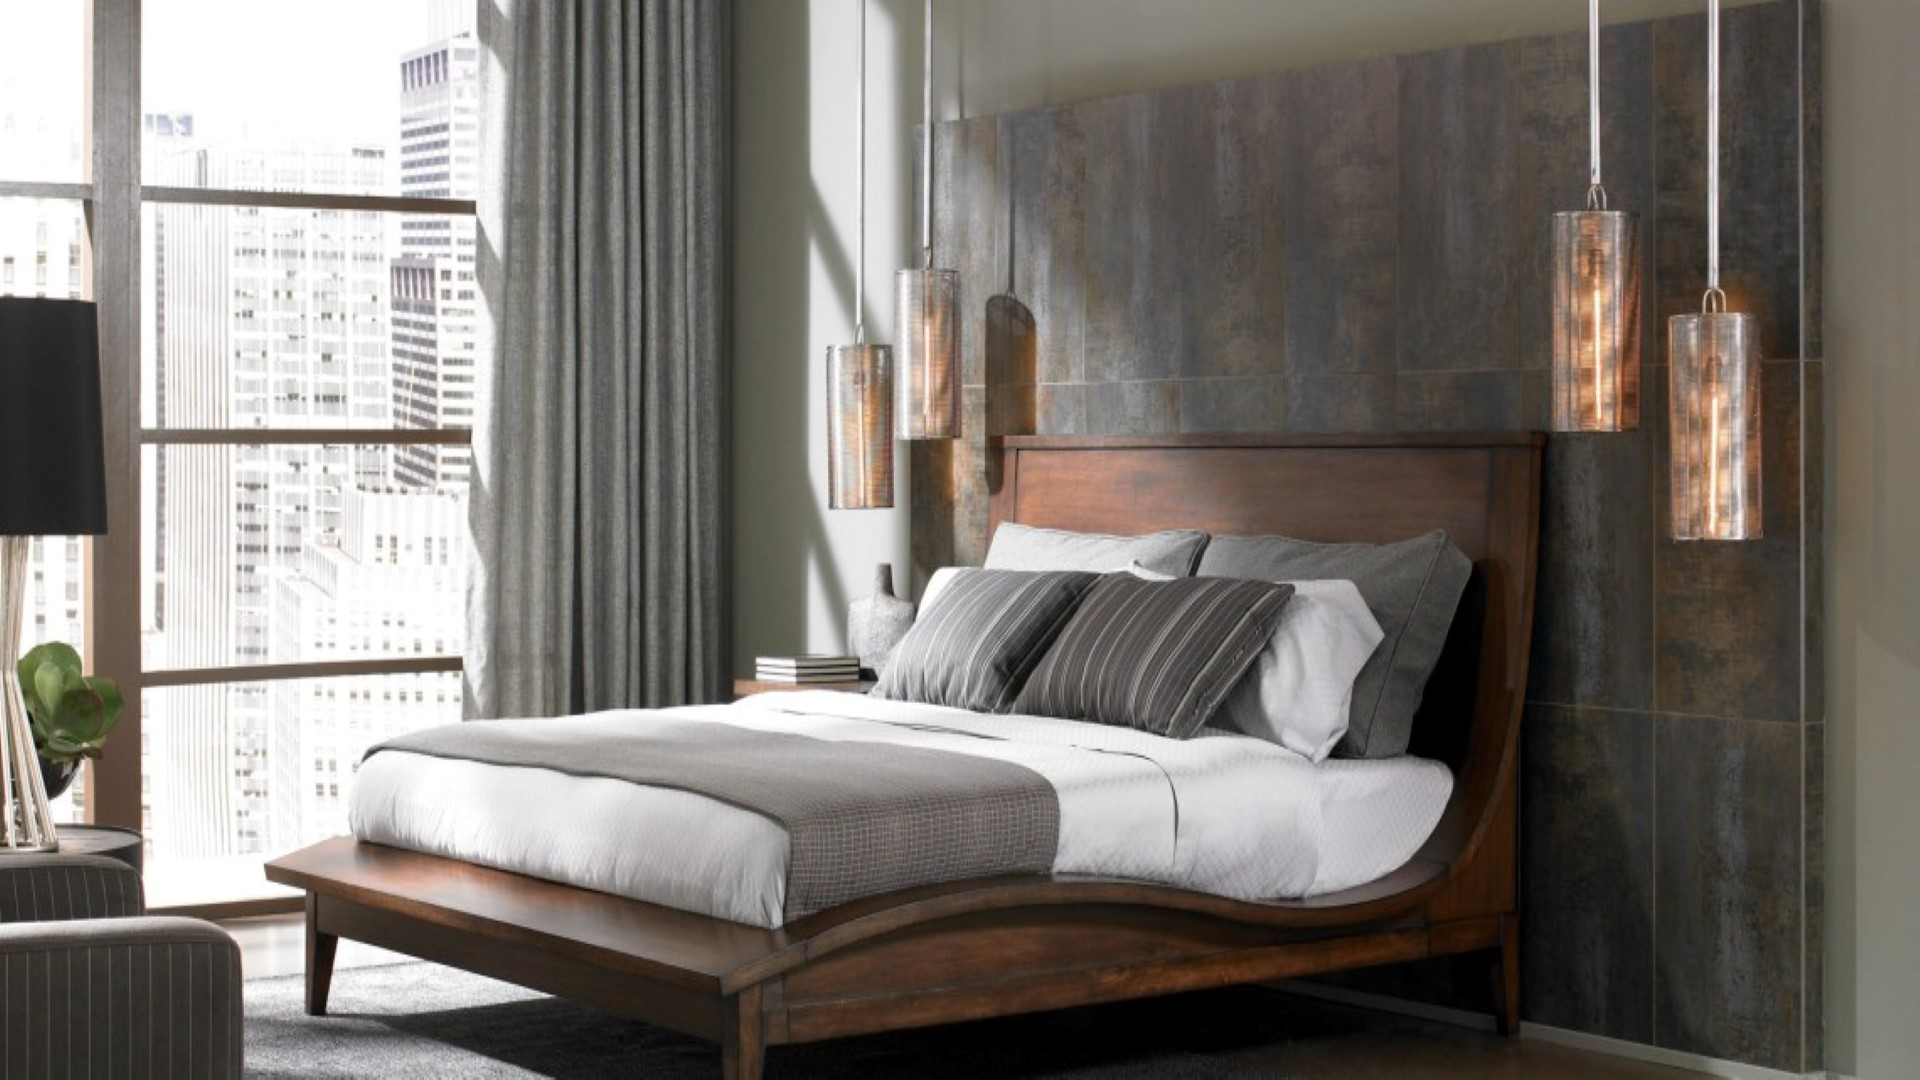 Metallic pendant lights complements wooden accents in the Contemporary bedroom